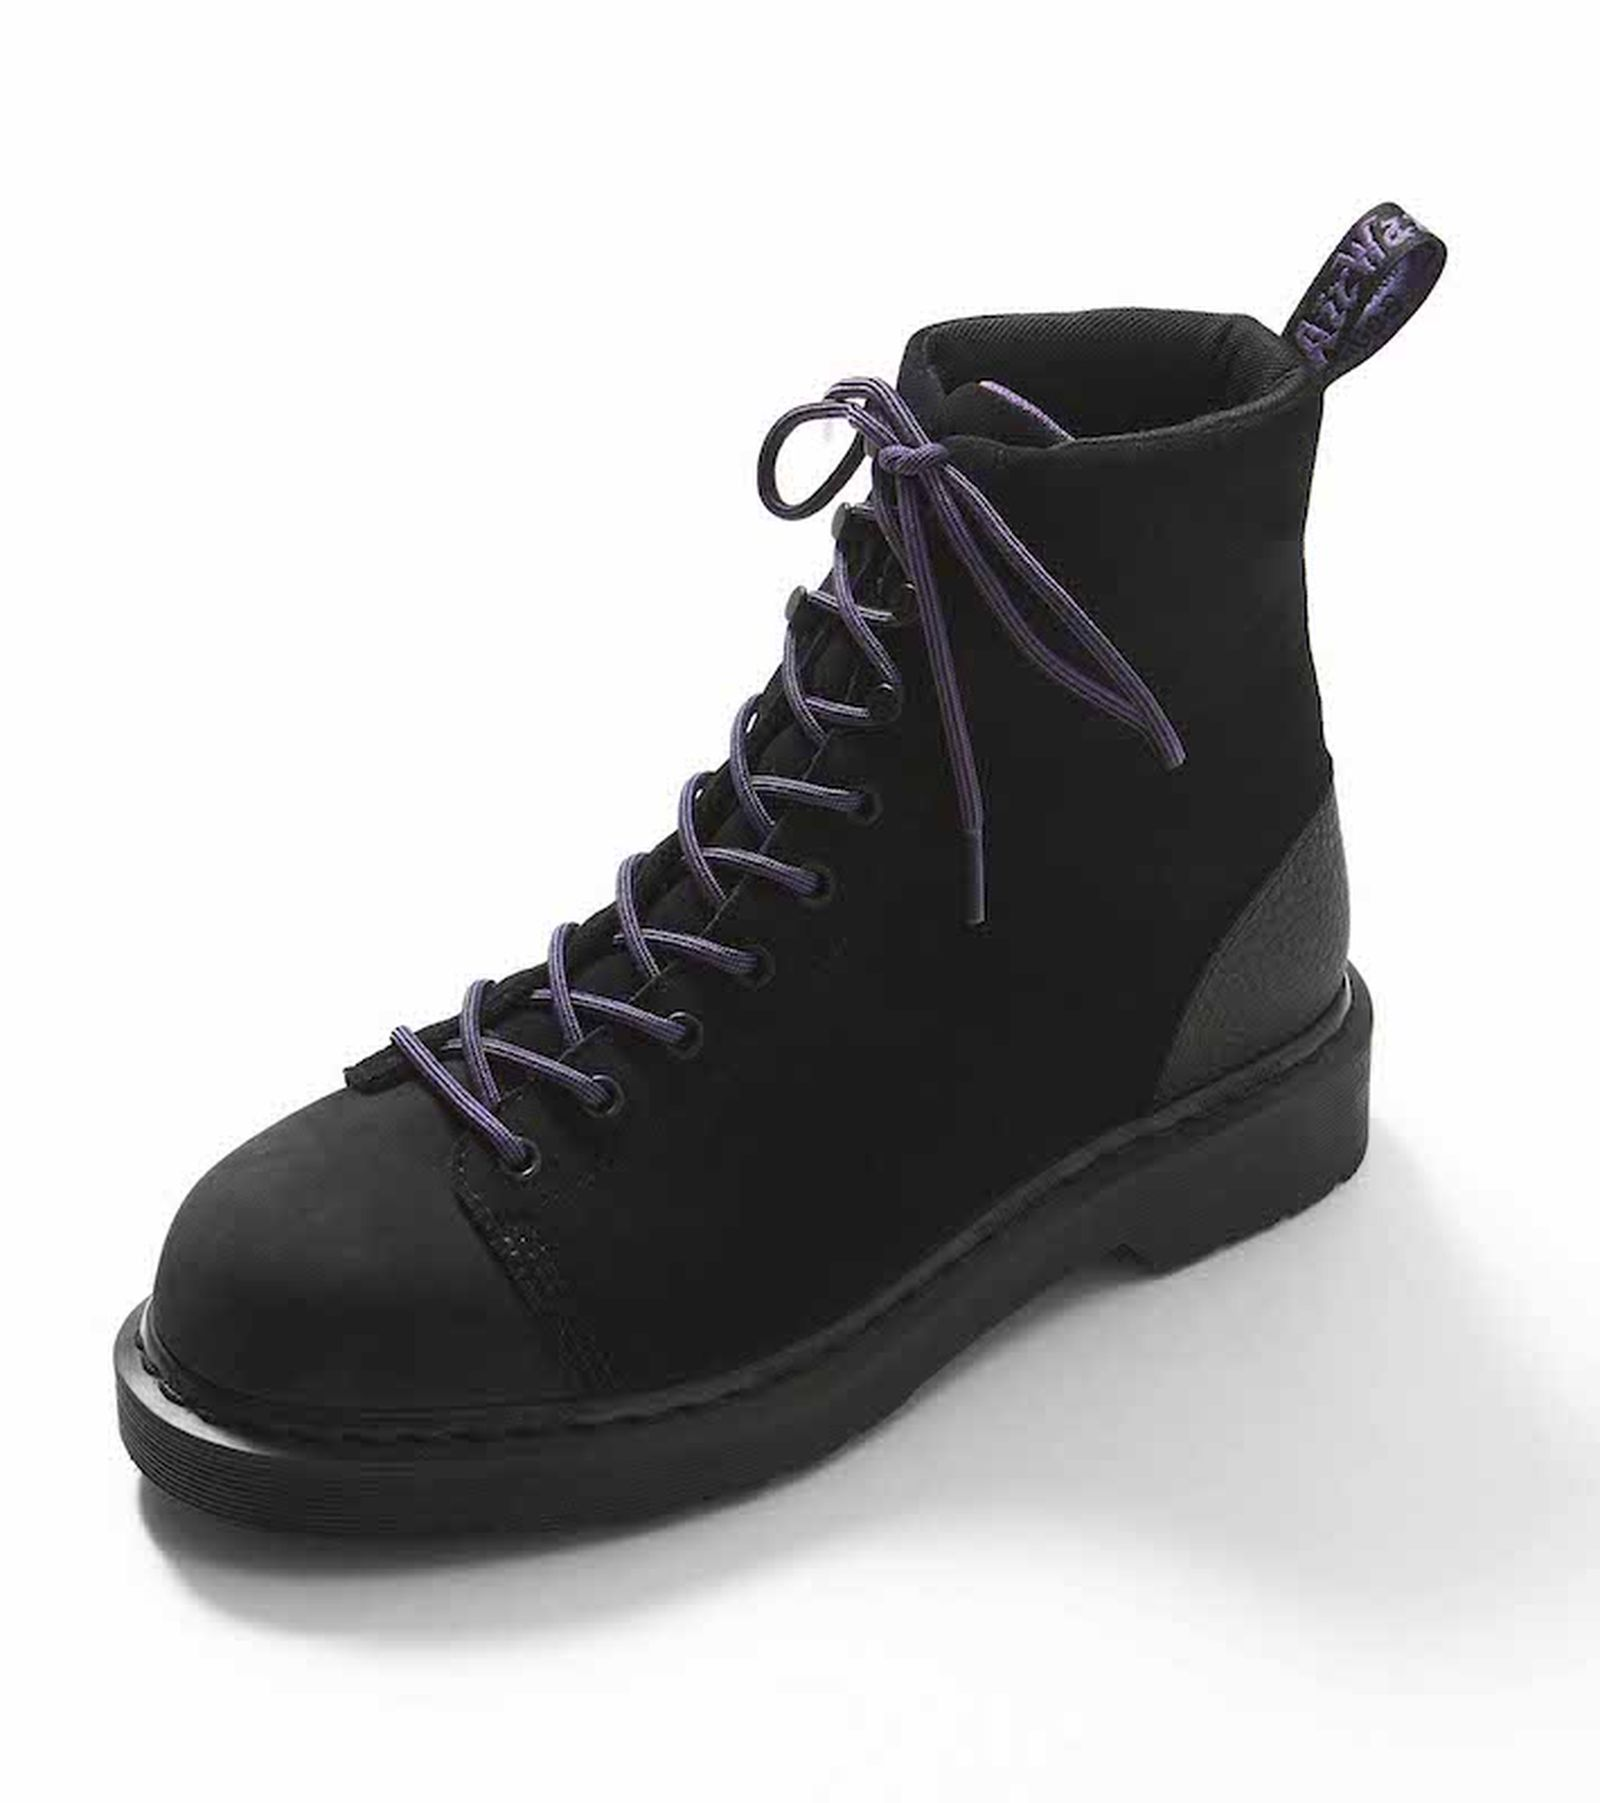 the-north-face-purple-label-dr-martens-boots-10